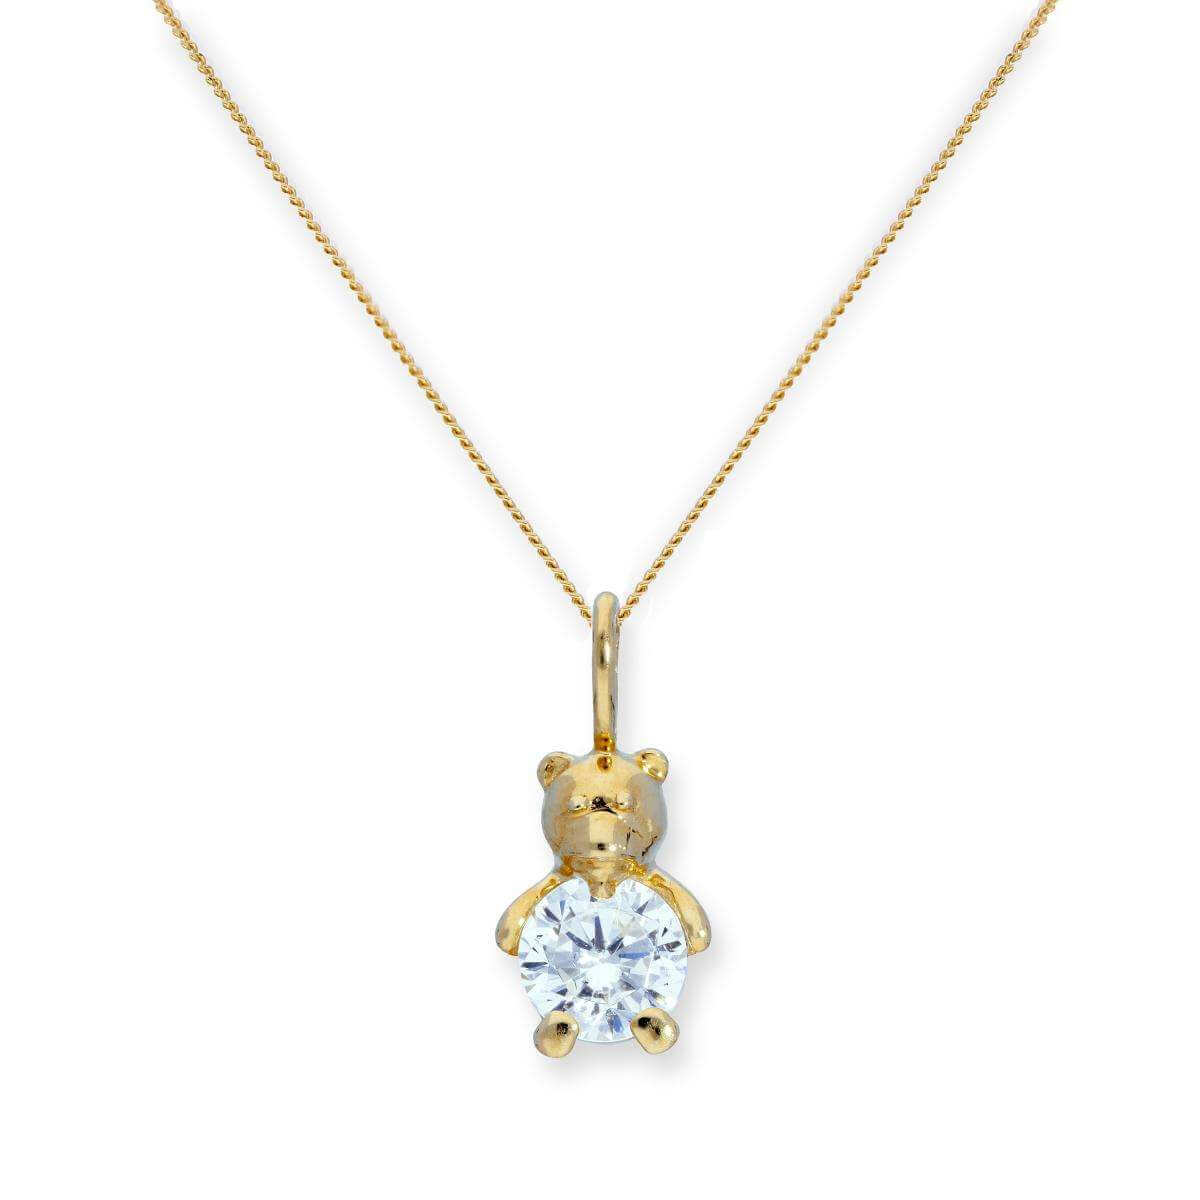 9ct Gold & Clear CZ Crystal Teddy Bear Pendant Necklace 16 - 20 Inches